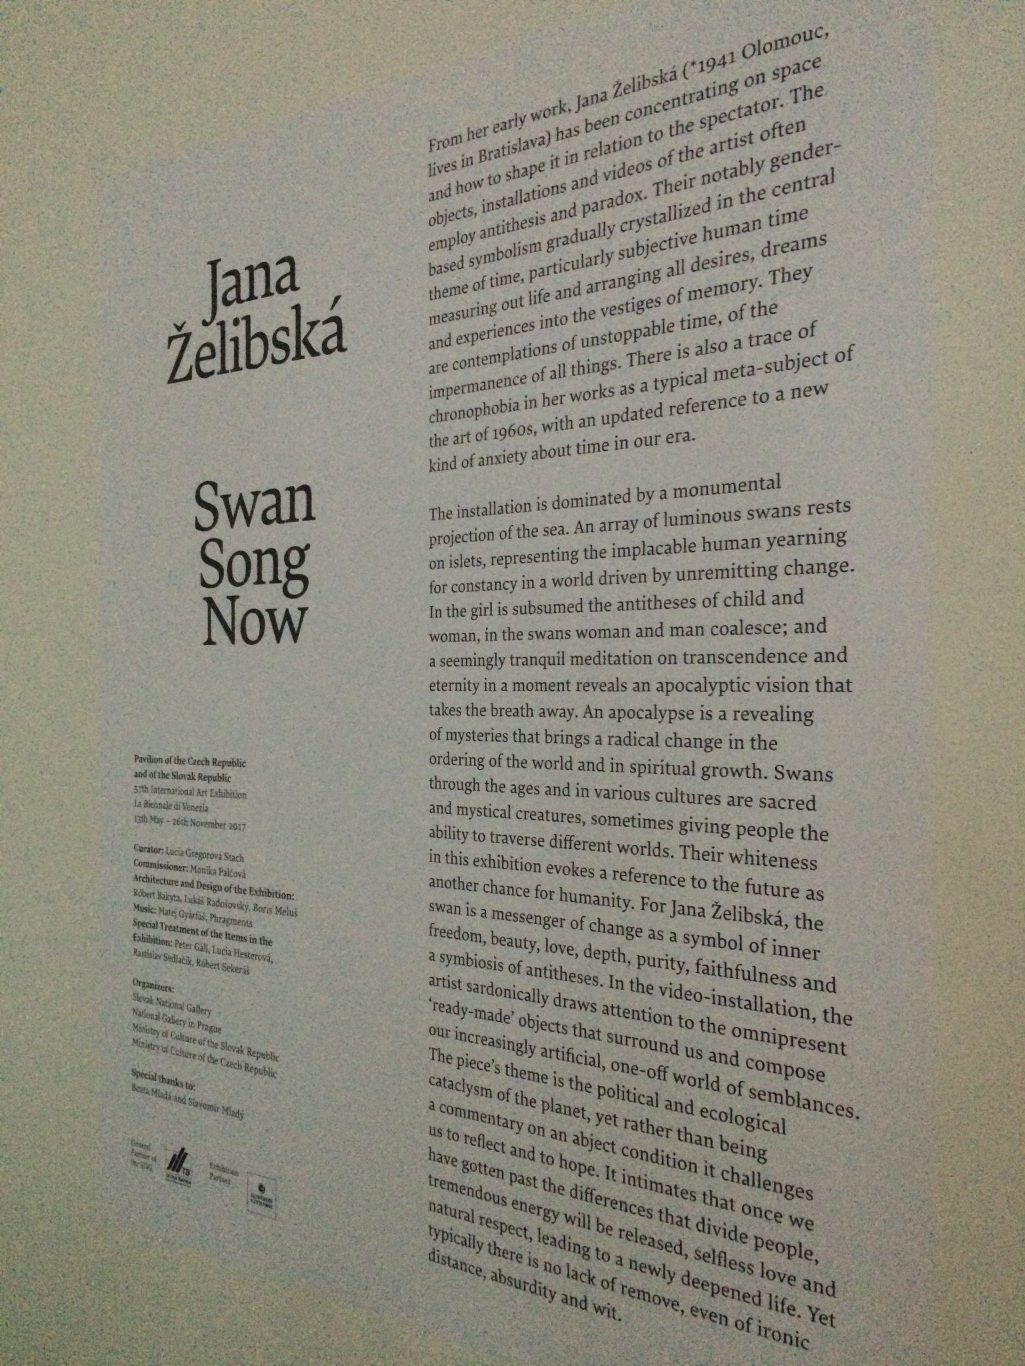 Jana Želibská's multi-media installation at the Czech and Slovak Pavilion.